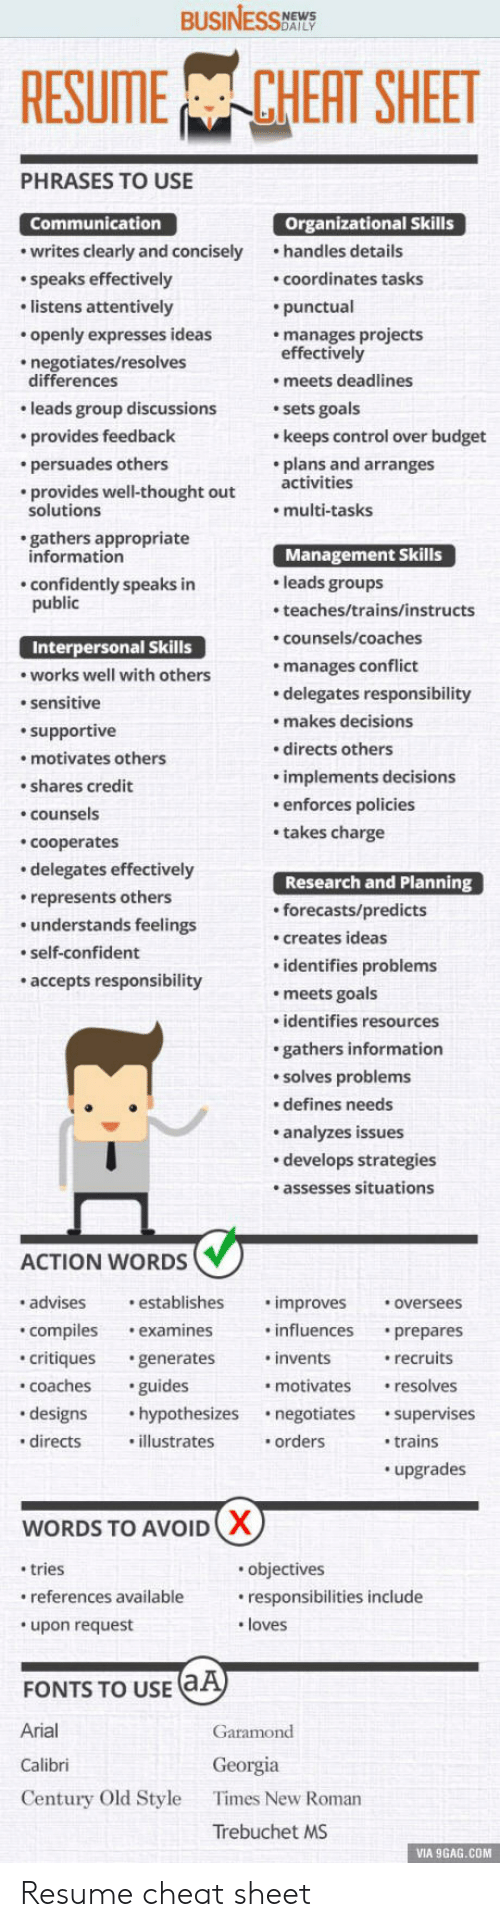 Upgrades: BUSINESSBE  NEWS  DAILY  RESUME CHEAT SHEET  PHRASES TO USE  Organizational Skills  Communication  handles details  Coordinates tasks  writes clearly and concisely  speaks effectively  listens attentively  punctual  manages projects  effectively  openly expresses ideas  negotiates/resolves  differences  meets deadlines  leads group discussions  provides feedback  sets goals  keeps control over budget  plans and arranges  activities  persuades others  provides well-thought out  solutions  multi-tasks  gathers appropriate  information  Management Skills  confidently speaks in  public  leads groups  teaches/trains/instructs  counsels/coaches  Interpersonal Skills  works well with others  manages conflict  delegates responsibility  sensitive  makes decisions  supportive  directs others  motivates others  implements decisions  shares credit  enforces policies  counsels  takes charge  Cooperates  delegates effectively  Research and Planning  represents others  understands feelings  forecasts/predicts  creates ideas  self-confident  identifies problems  accepts responsibility  .meets goals  identifies resources  gathers information  solves problems  defines needs  analyzes issues  develops strategies  assesses situations  ACTION WORDS  establishes  advises  improves  Oversees  examines  influences  compiles  prepares  critiques  invents  recruits  generates  guides  motivates  resolves  coaches  designs  .hypothesizes  supervises  negotiates  directs  illustrates  orders  trains  upgrades  WORDS TO AVOIDX  tries  objectives  references available  responsibilities include  loves  upon request  FONTS TO USE (aA  Arial  Garamond  Georgia  Calibri  Century Old Style  Times New Roman  Trebuchet MS Resume cheat sheet